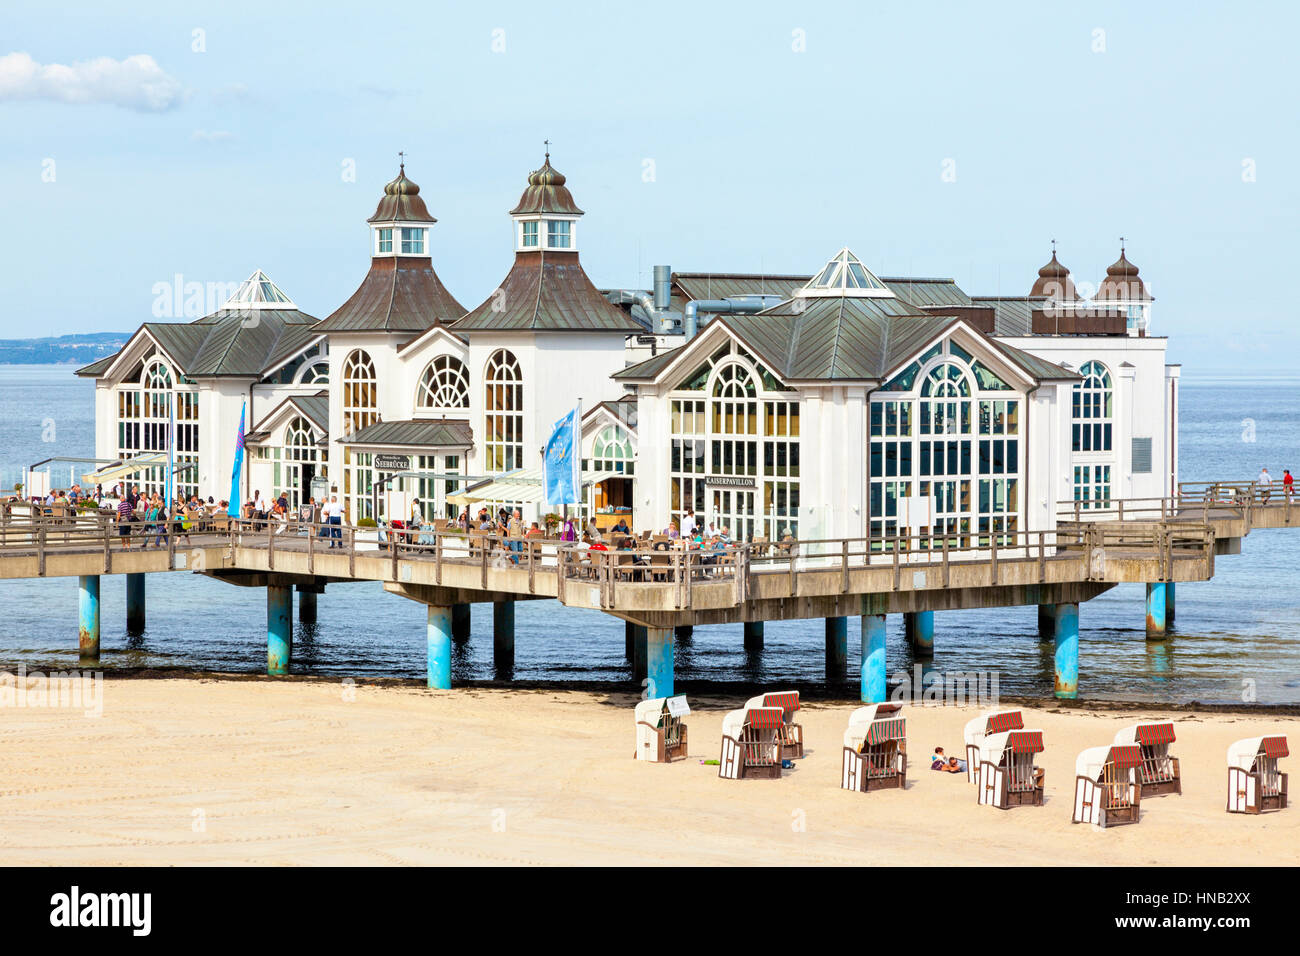 Sellin, Germany - September 22, 2016: Main building of the pier at Sellin, Rugia island. Reconstruction of the building - Stock Image